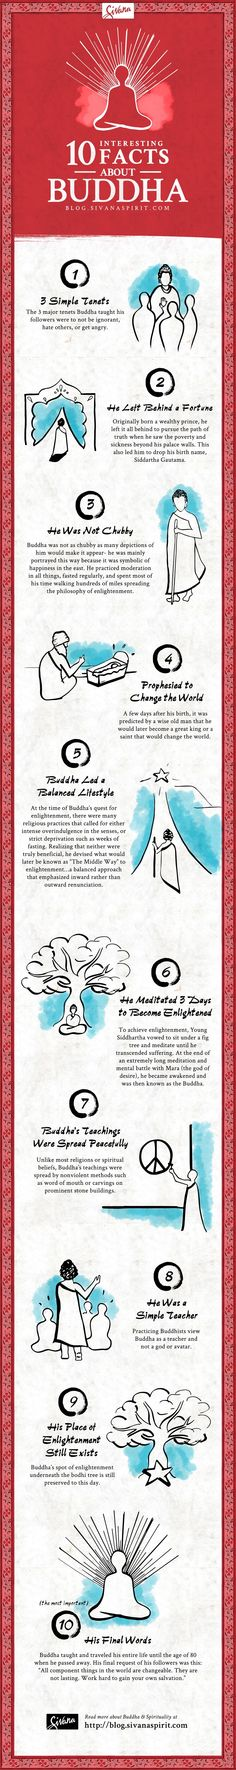 10 Interesting Facts About Buddha Infographic